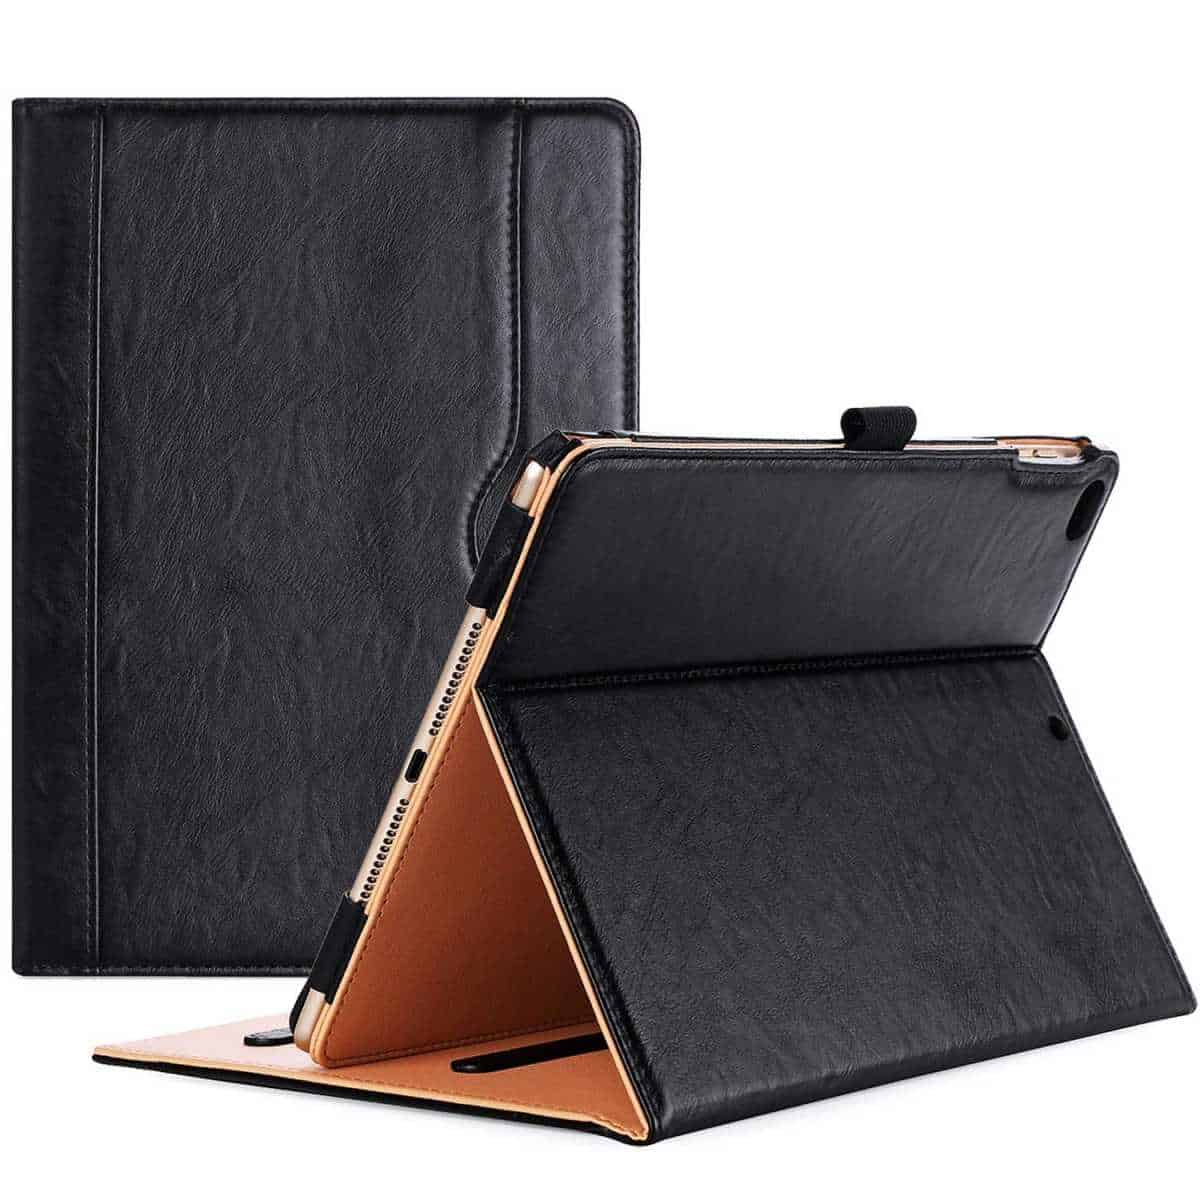 ProCase iPad Case | Essential iPad Accessories